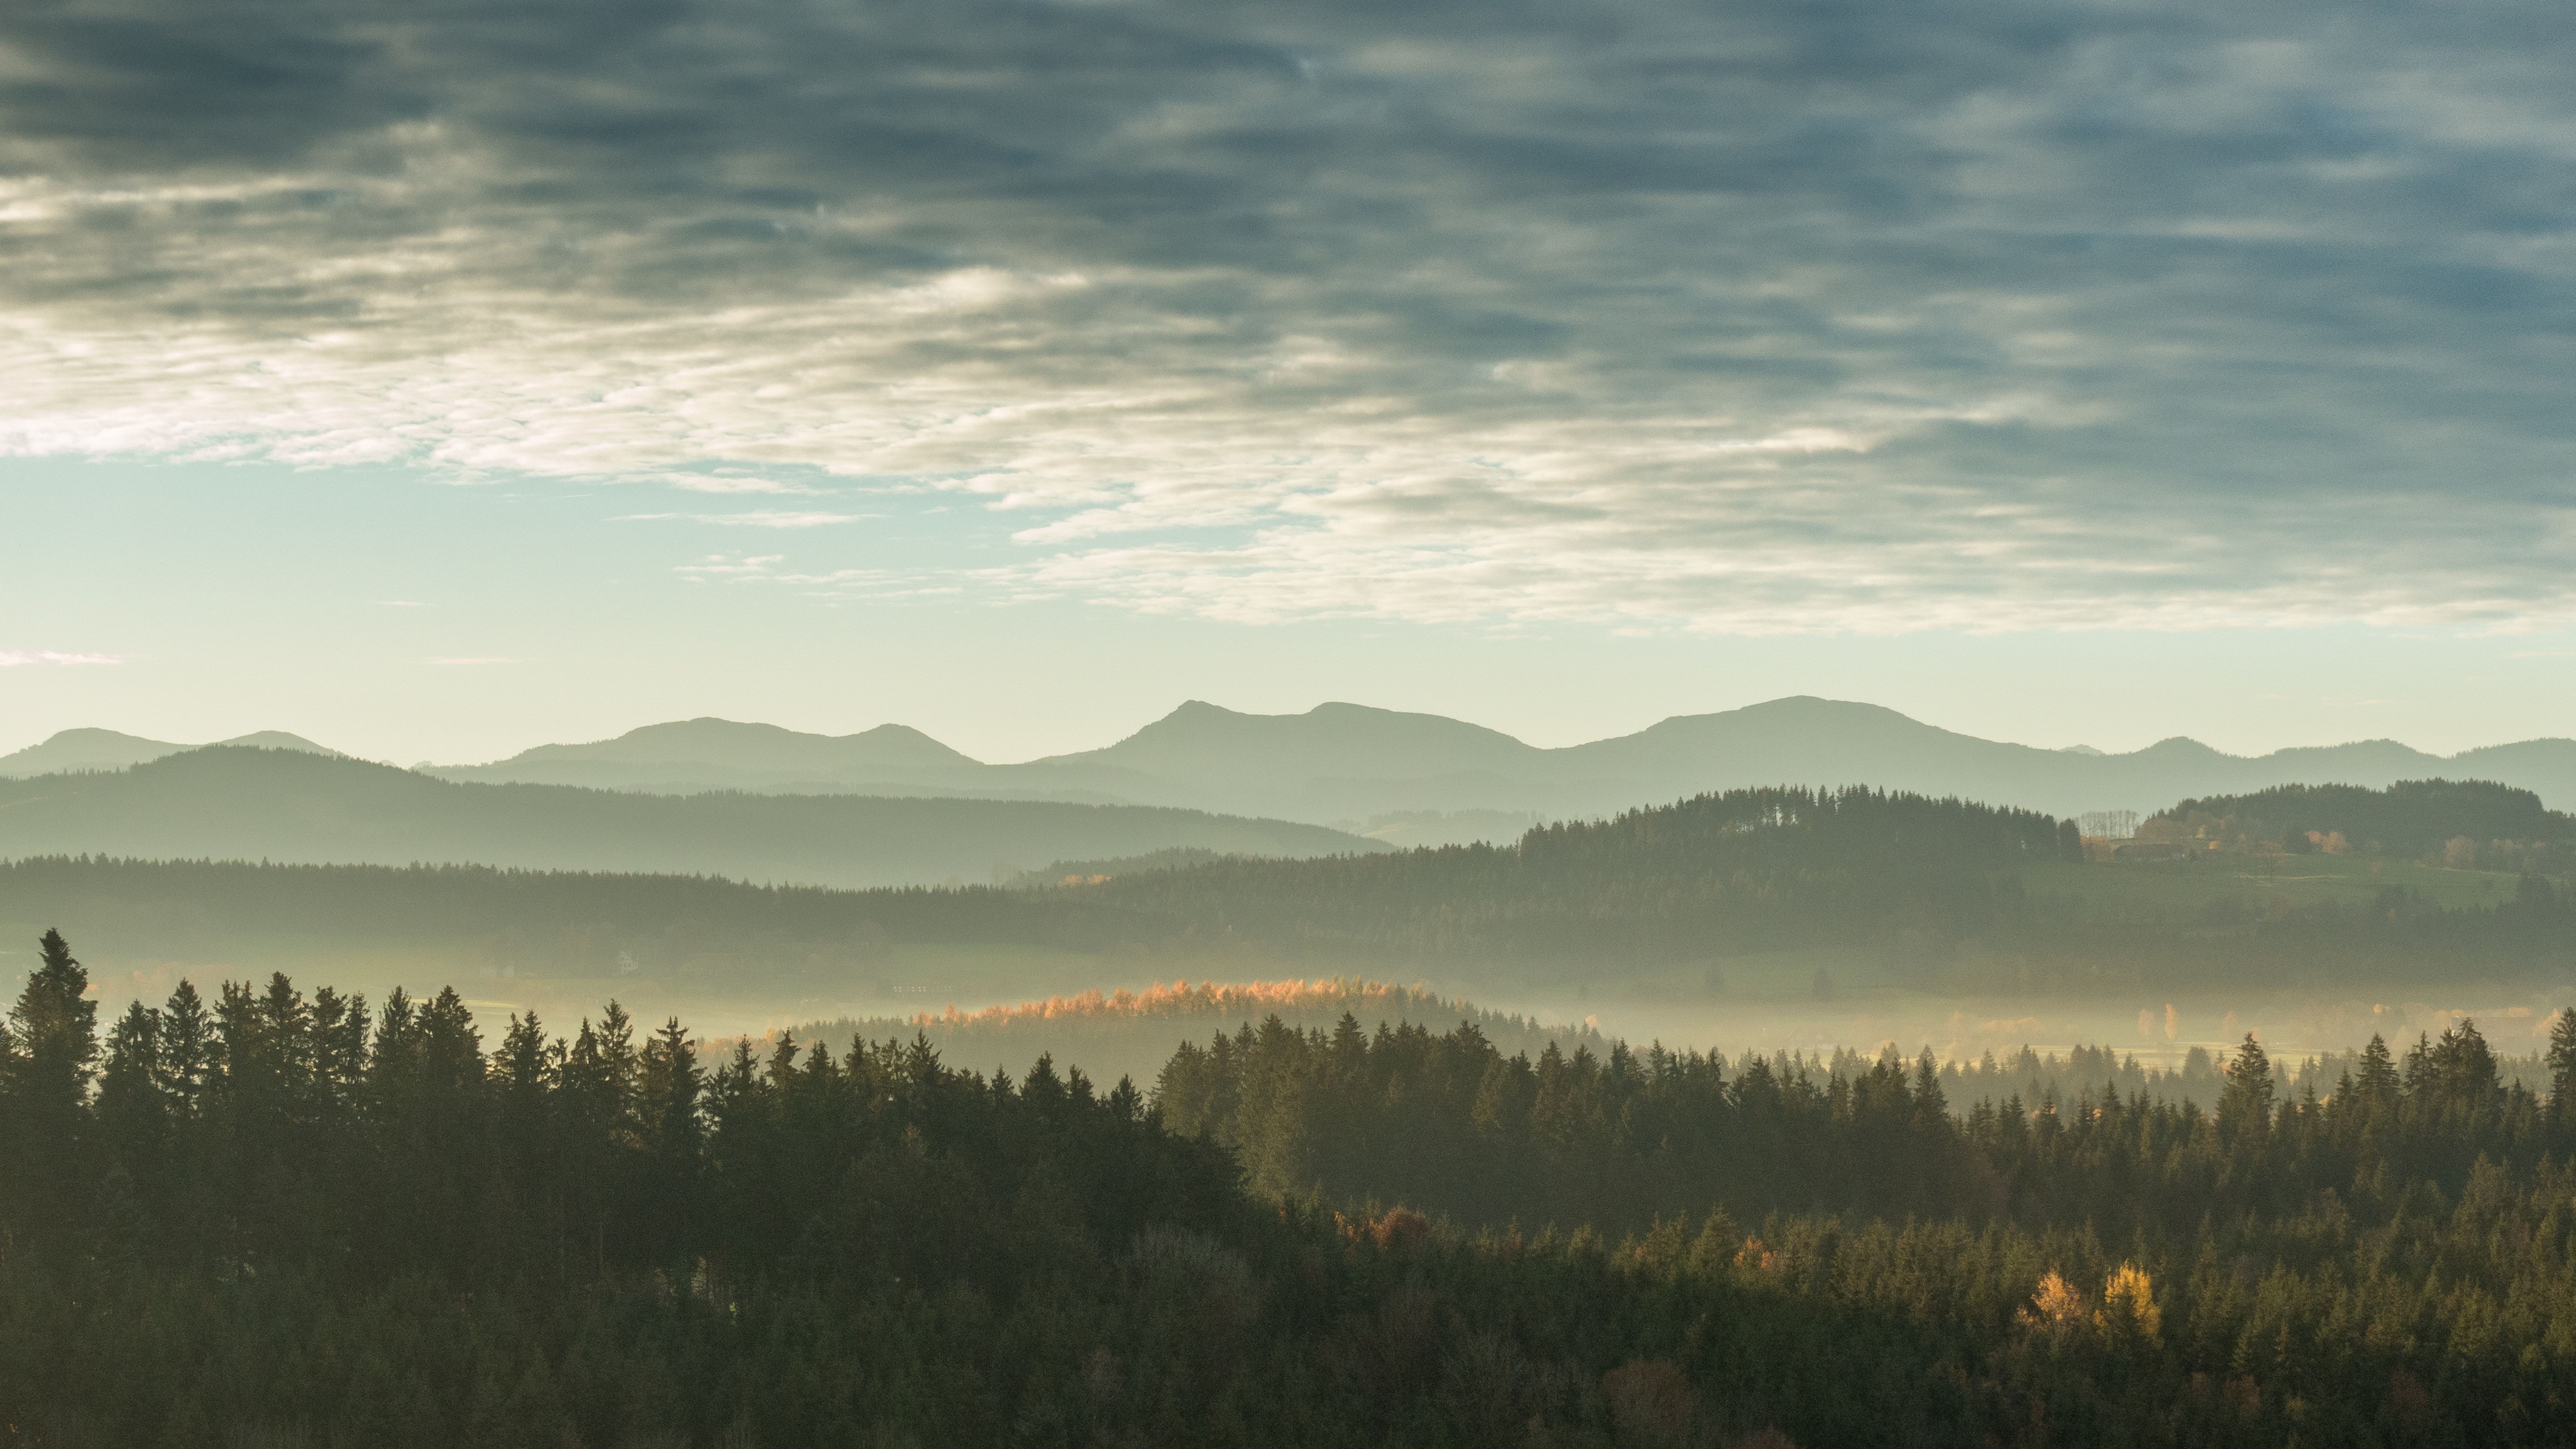 Green Woods And Low Mountains On The Horizon Under An Overcast Sky Landscape Nature Forest Pictures